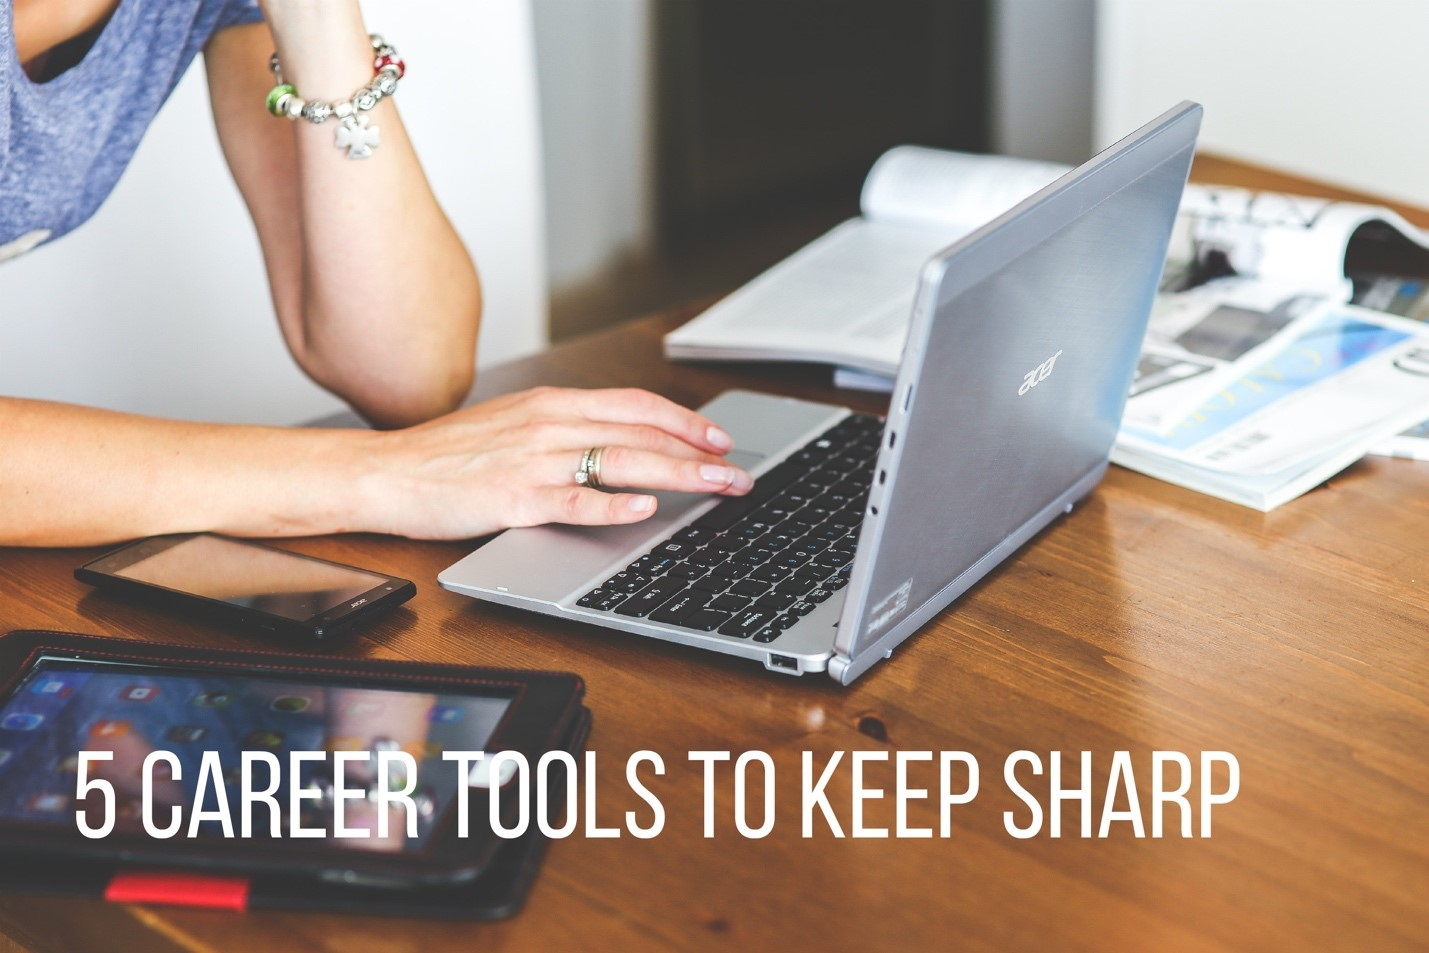 5 Career Tools To Keep Sharp And Ready To Use